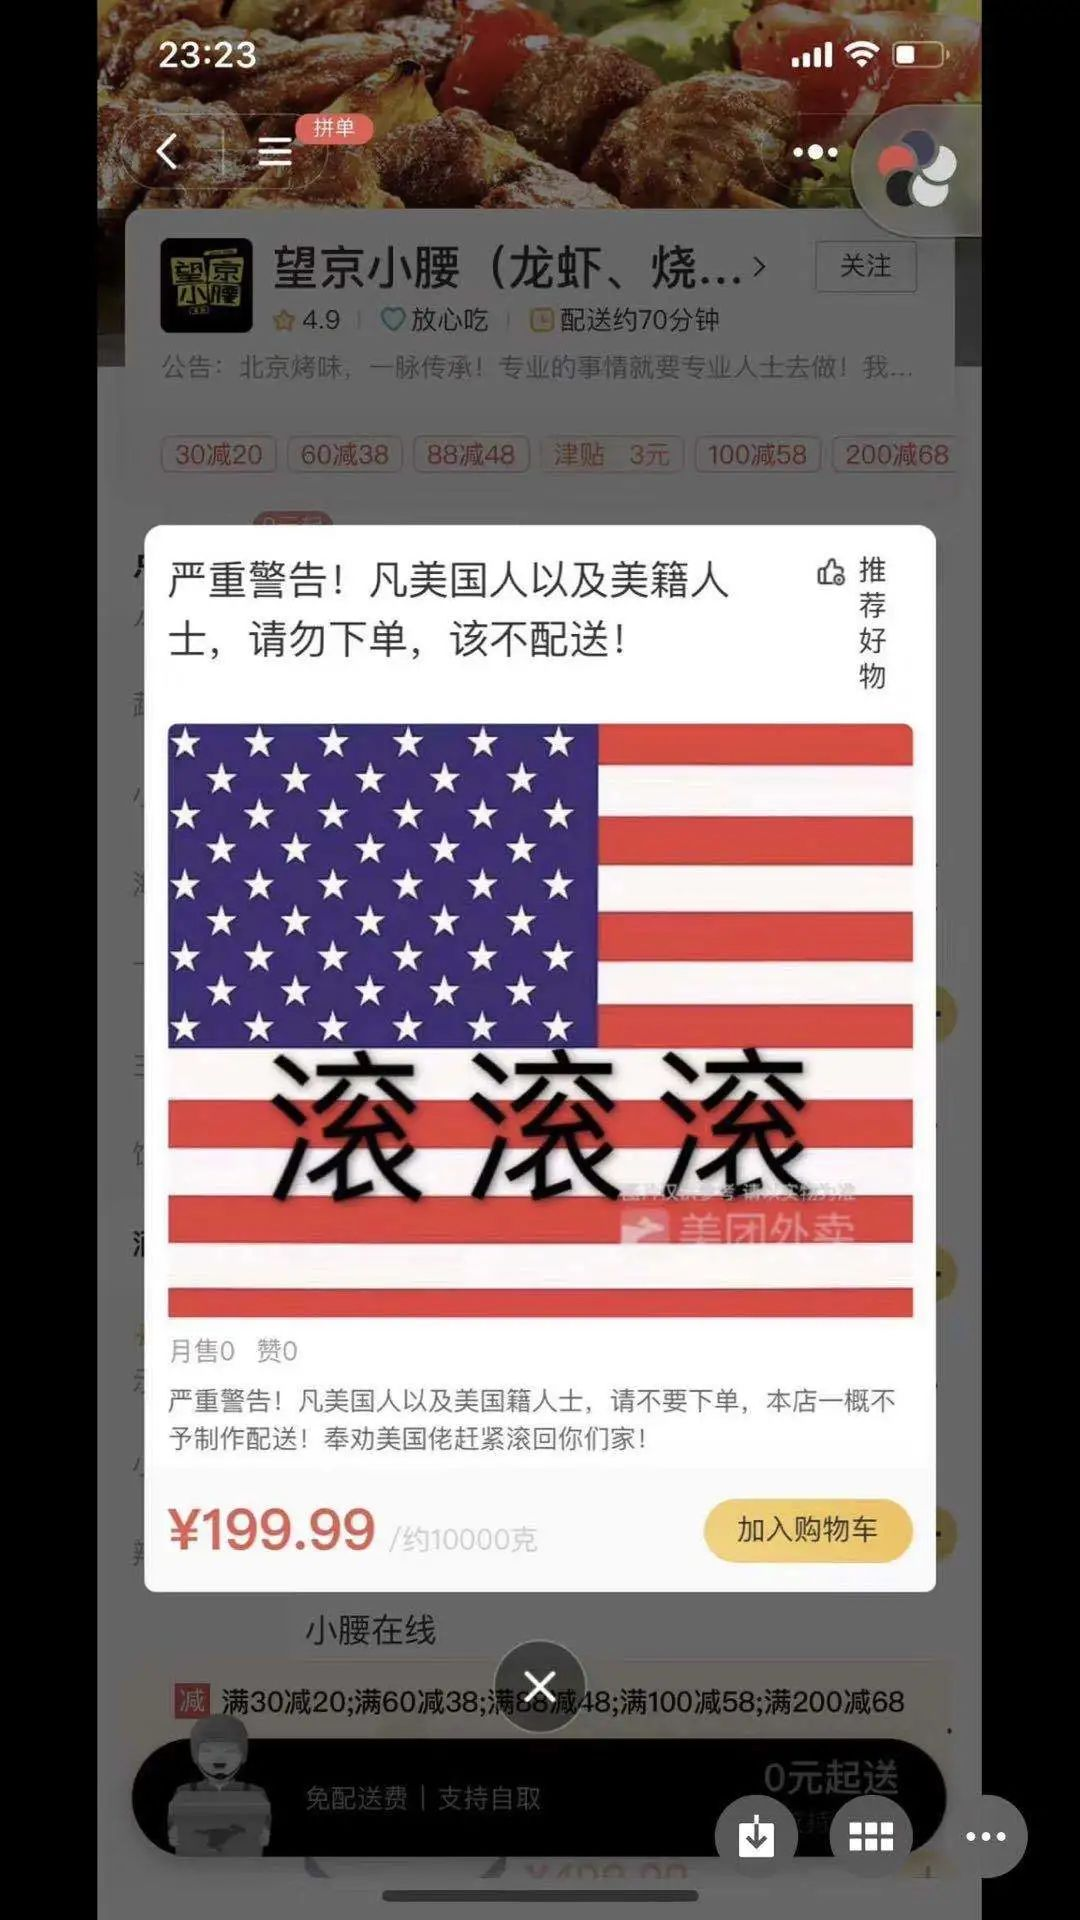 RACIST Restaurant In Beijing Won't Deliver Food To Americans